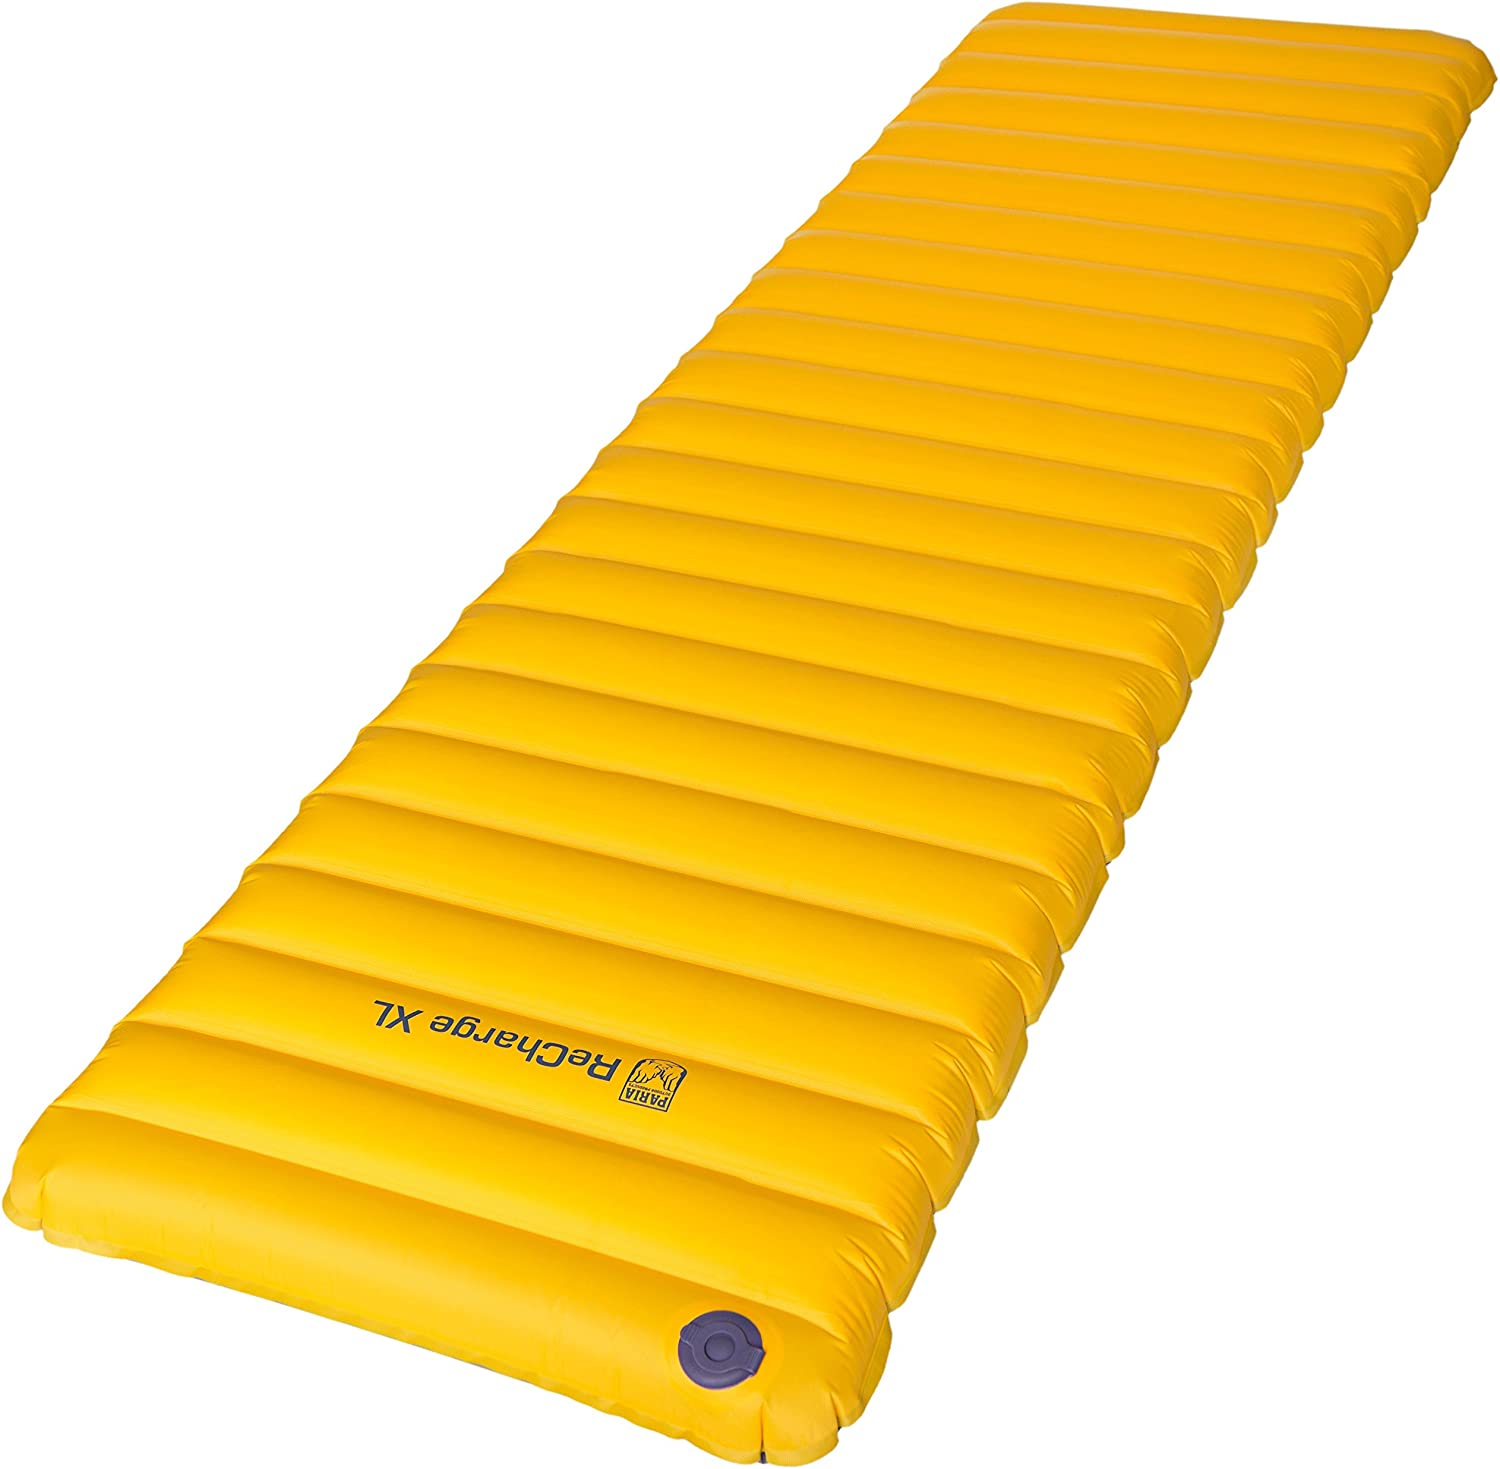 Paria Outdoor Products Recharge Sleeping Pad - Ultralight, Insulated Air Pad - Perfect for Backpacking, Bikepacking, Kayaking and Camping